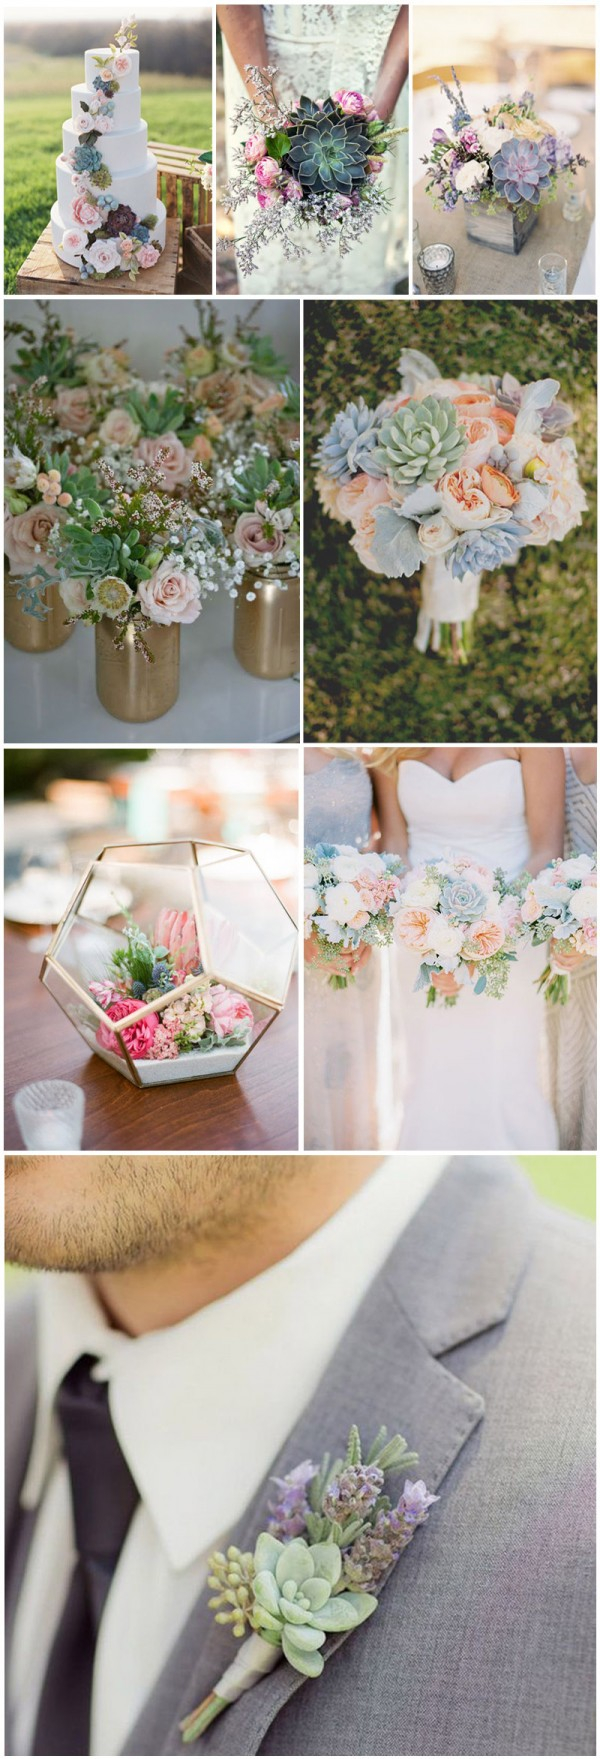 Succulent Wedding Decorations Top 10 Flowers Themed Wedding Ideas For Outdoor Ceremony